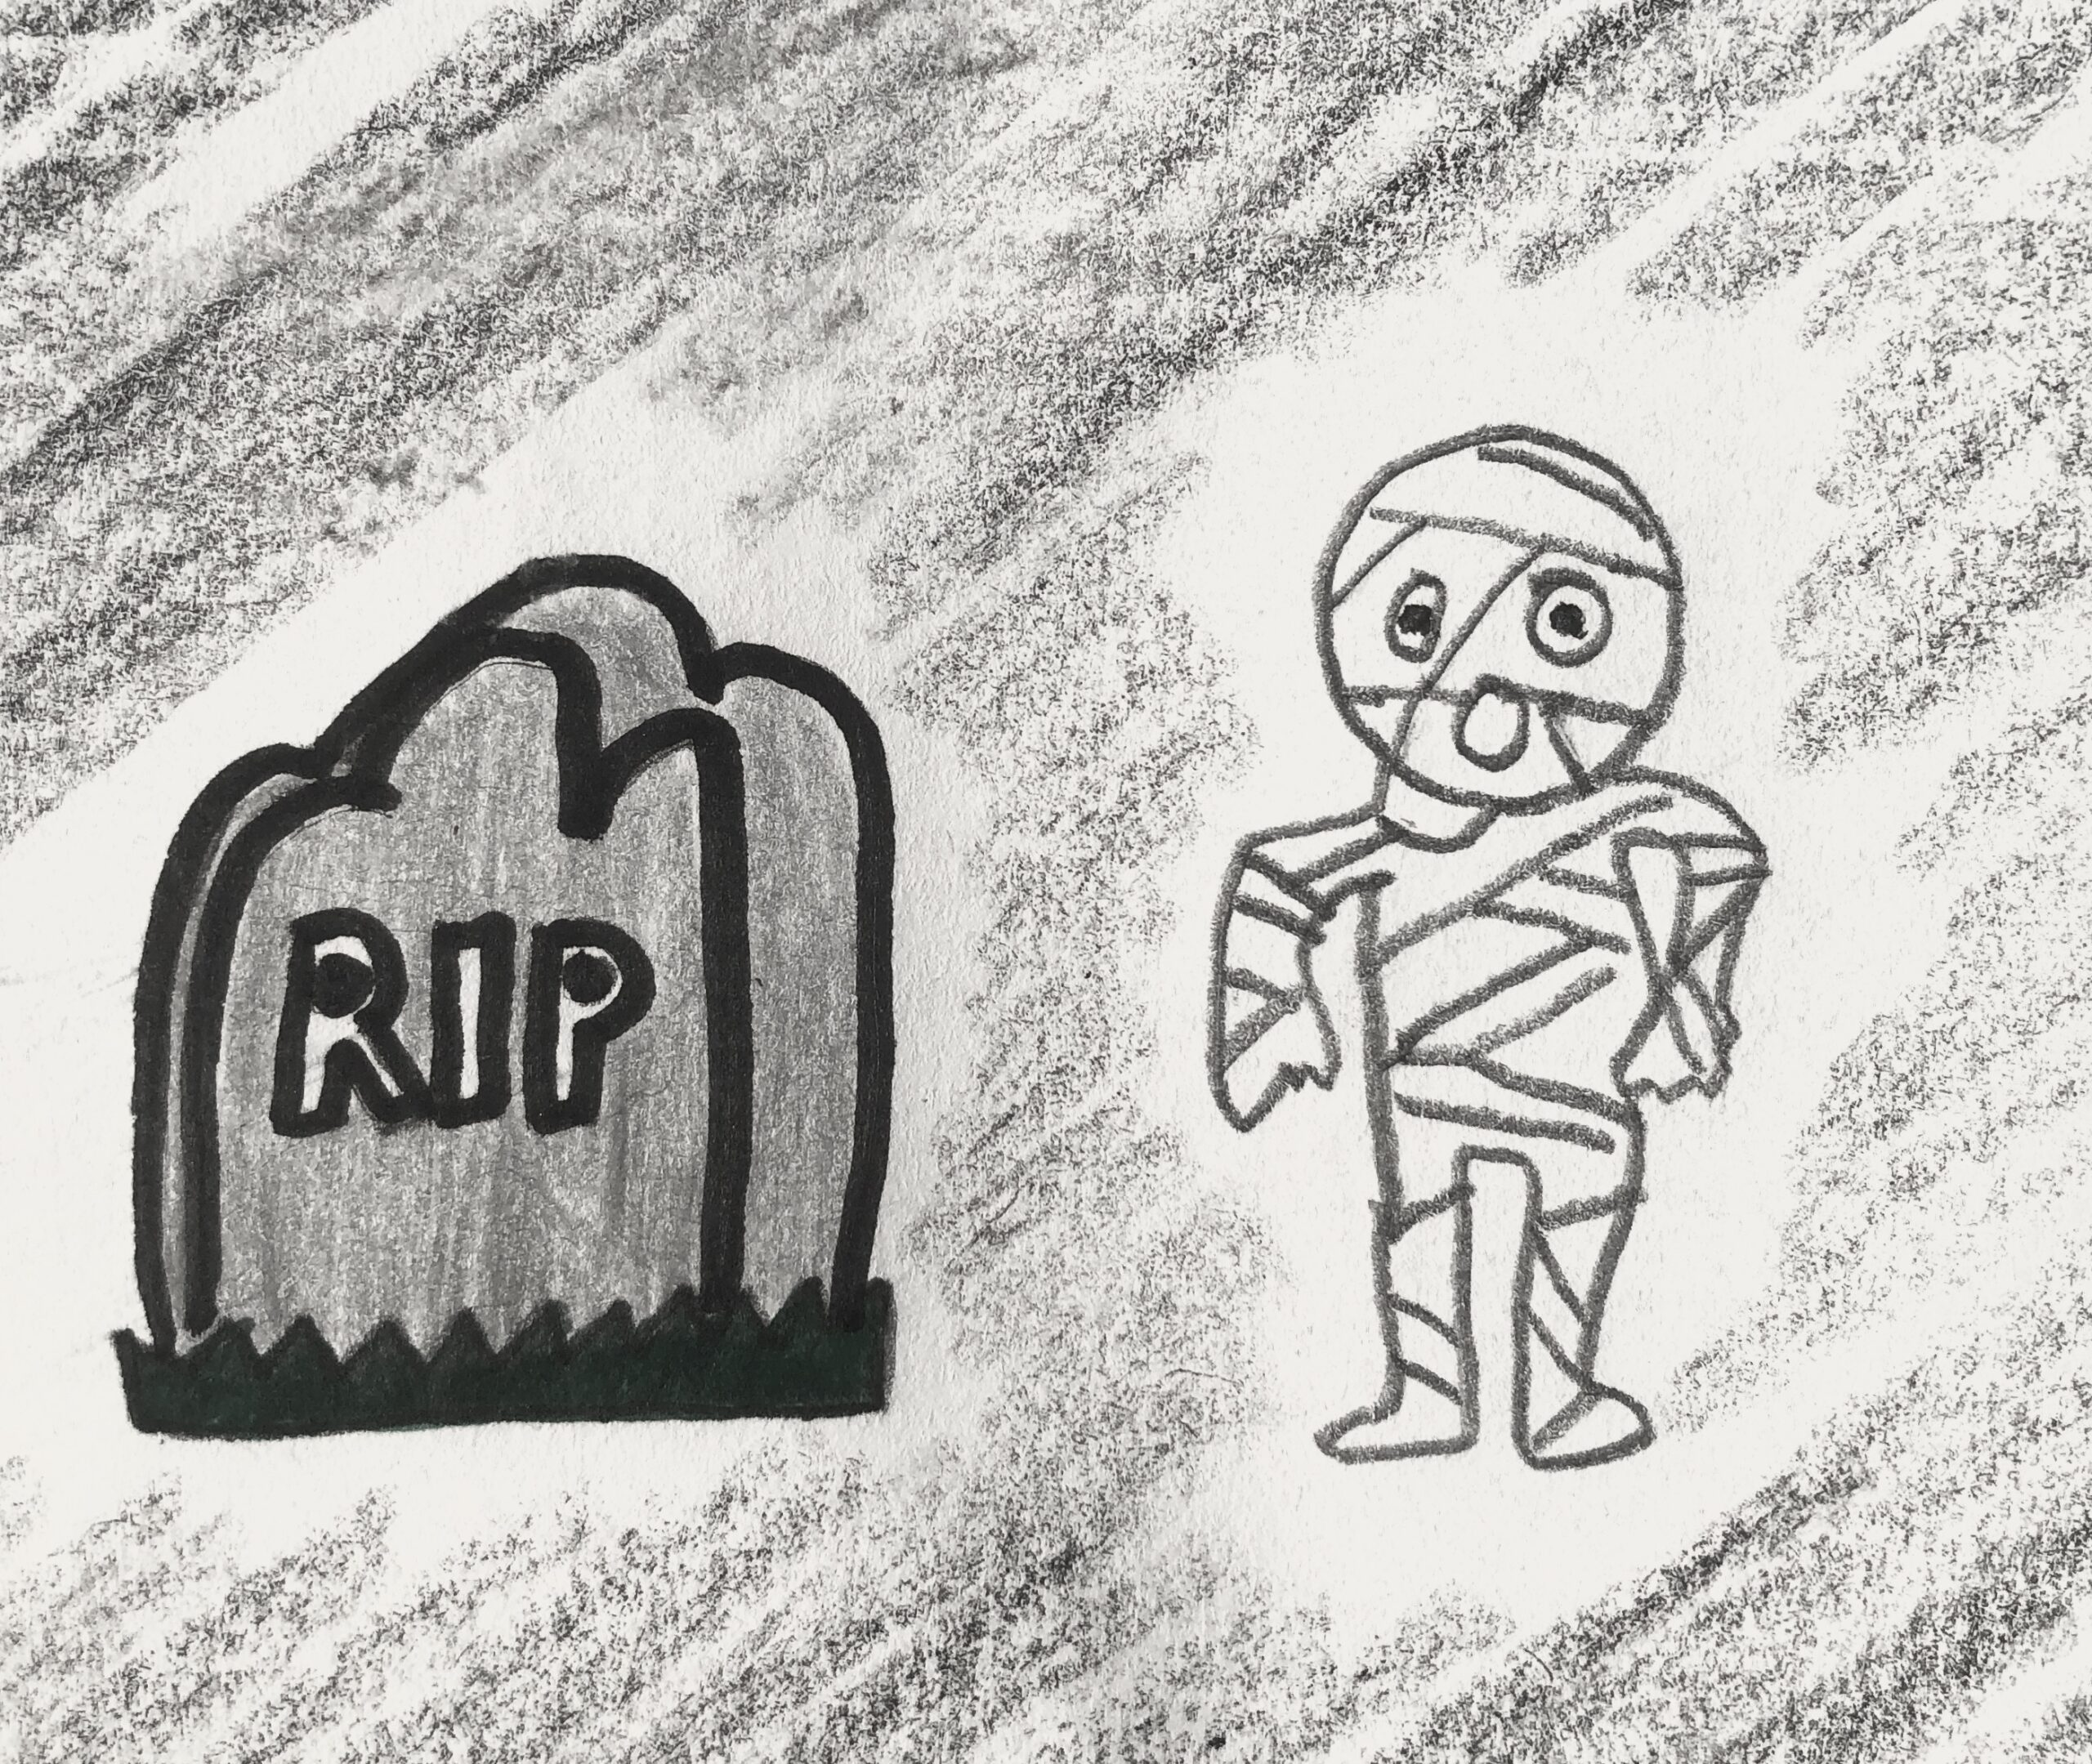 Detective story drawings of halloween decorations, a tombstone and a mummy.